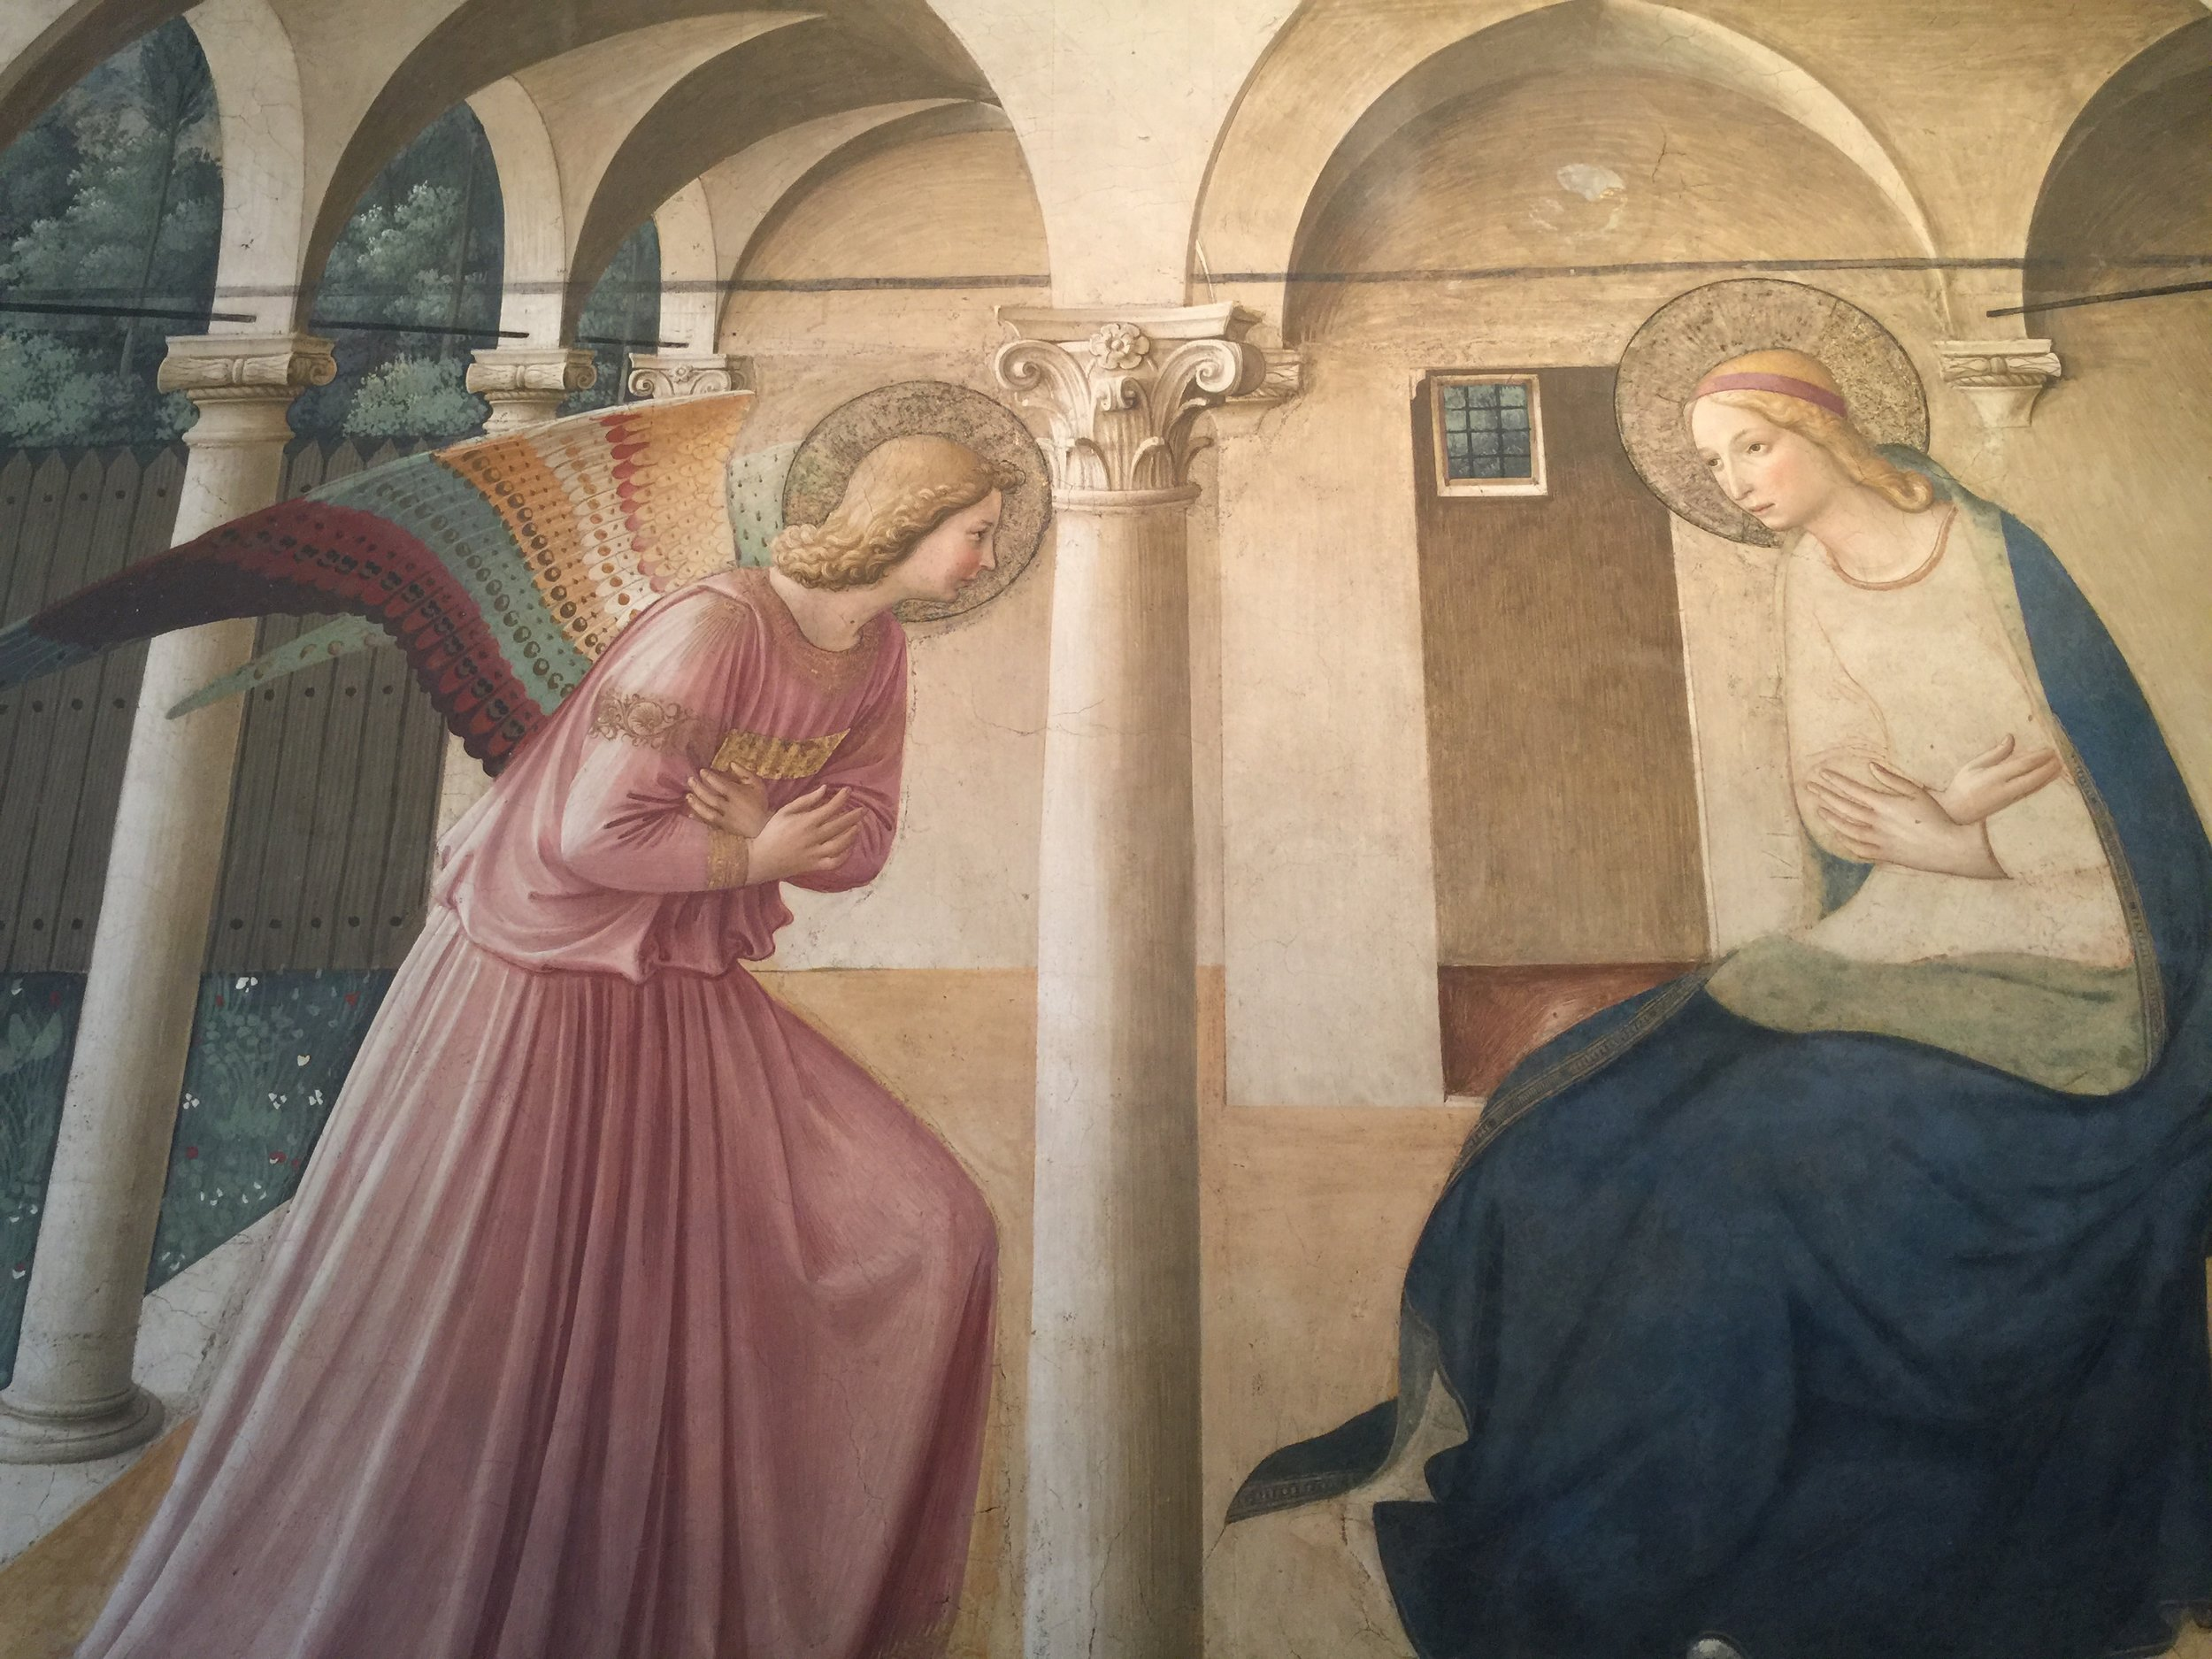 Convent of Saint Mark, where Fra Angelico (Giovani Fiesole) painted frescoes on the walls between 1439 and 1444.